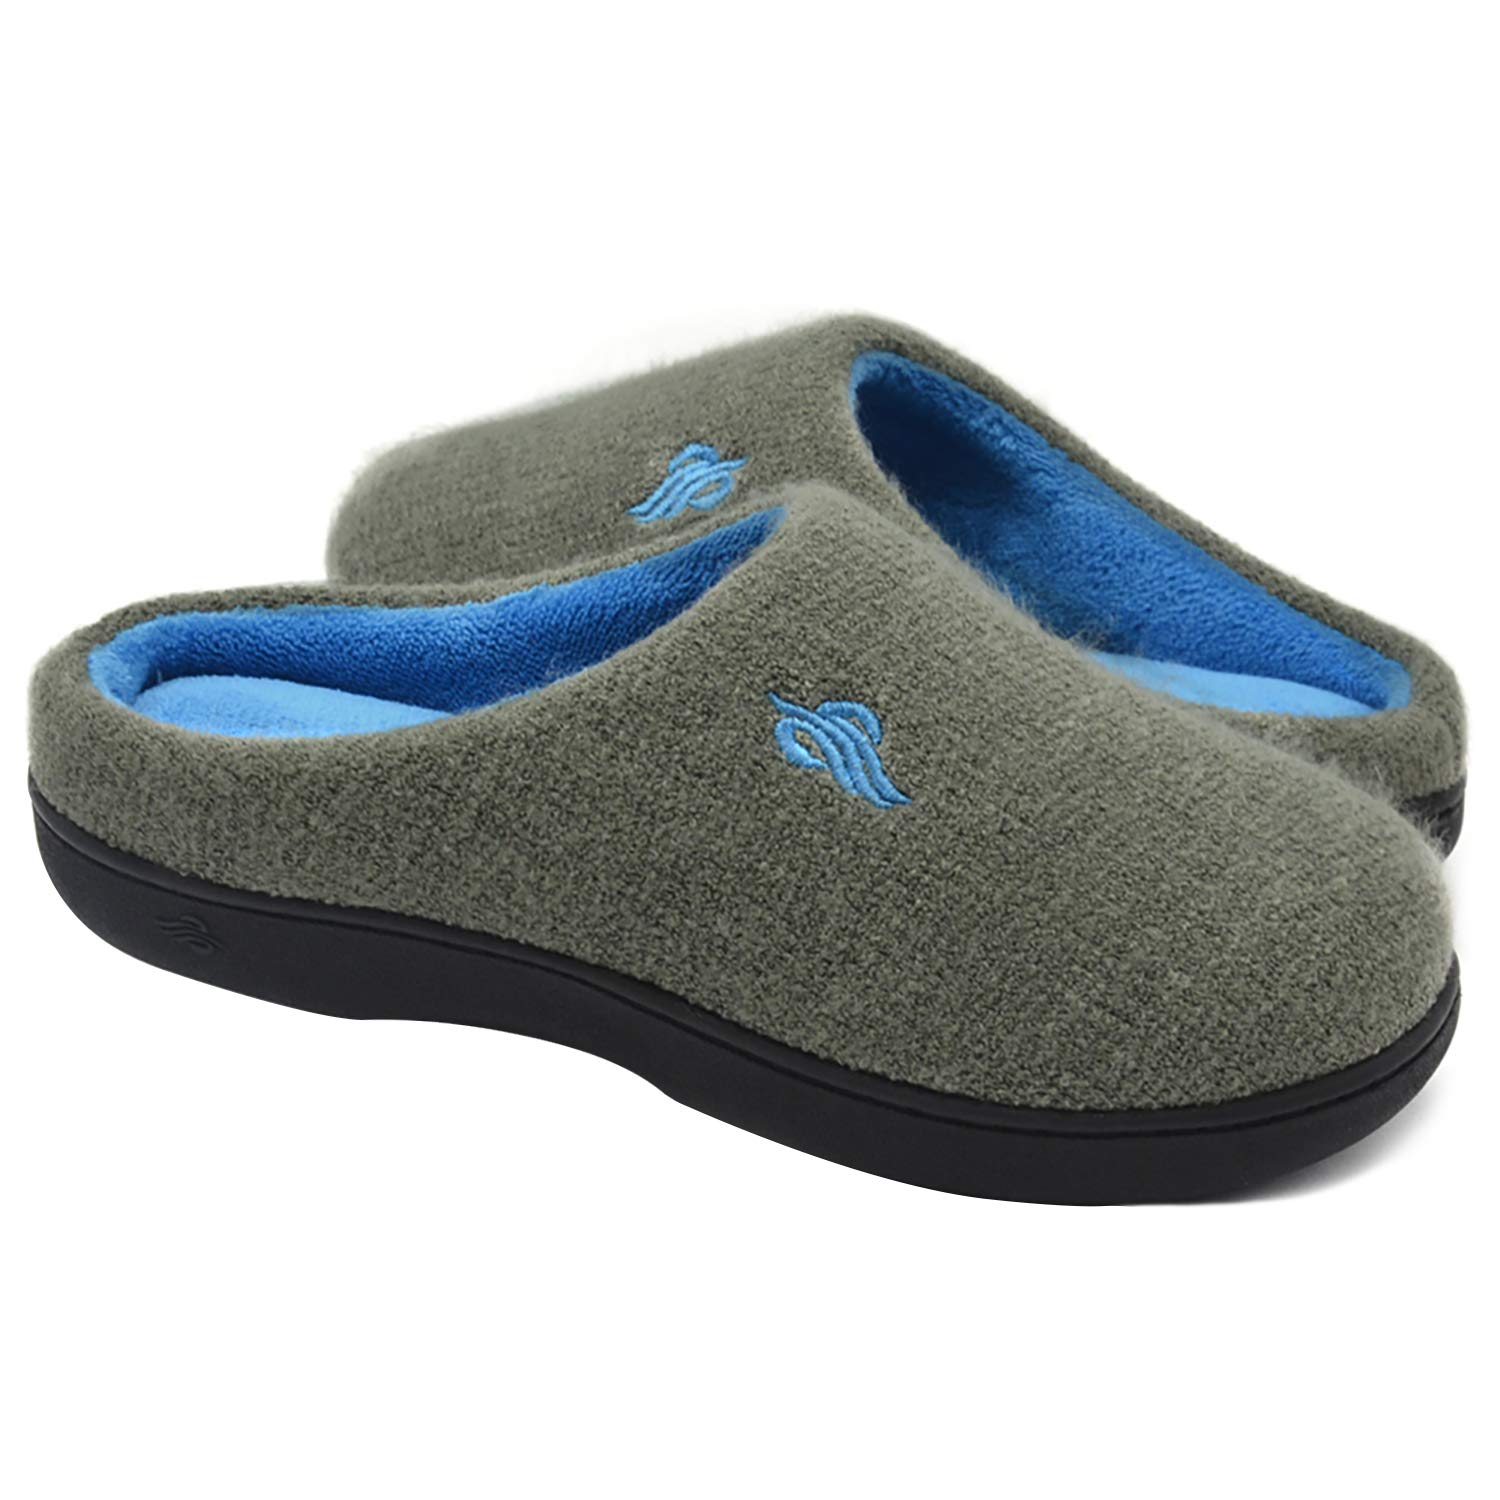 Wishcotton Women's Contrast Color Warm Cotton Slippers with Arch Support Winter Breathable Indoor/Outdoor House Shoes